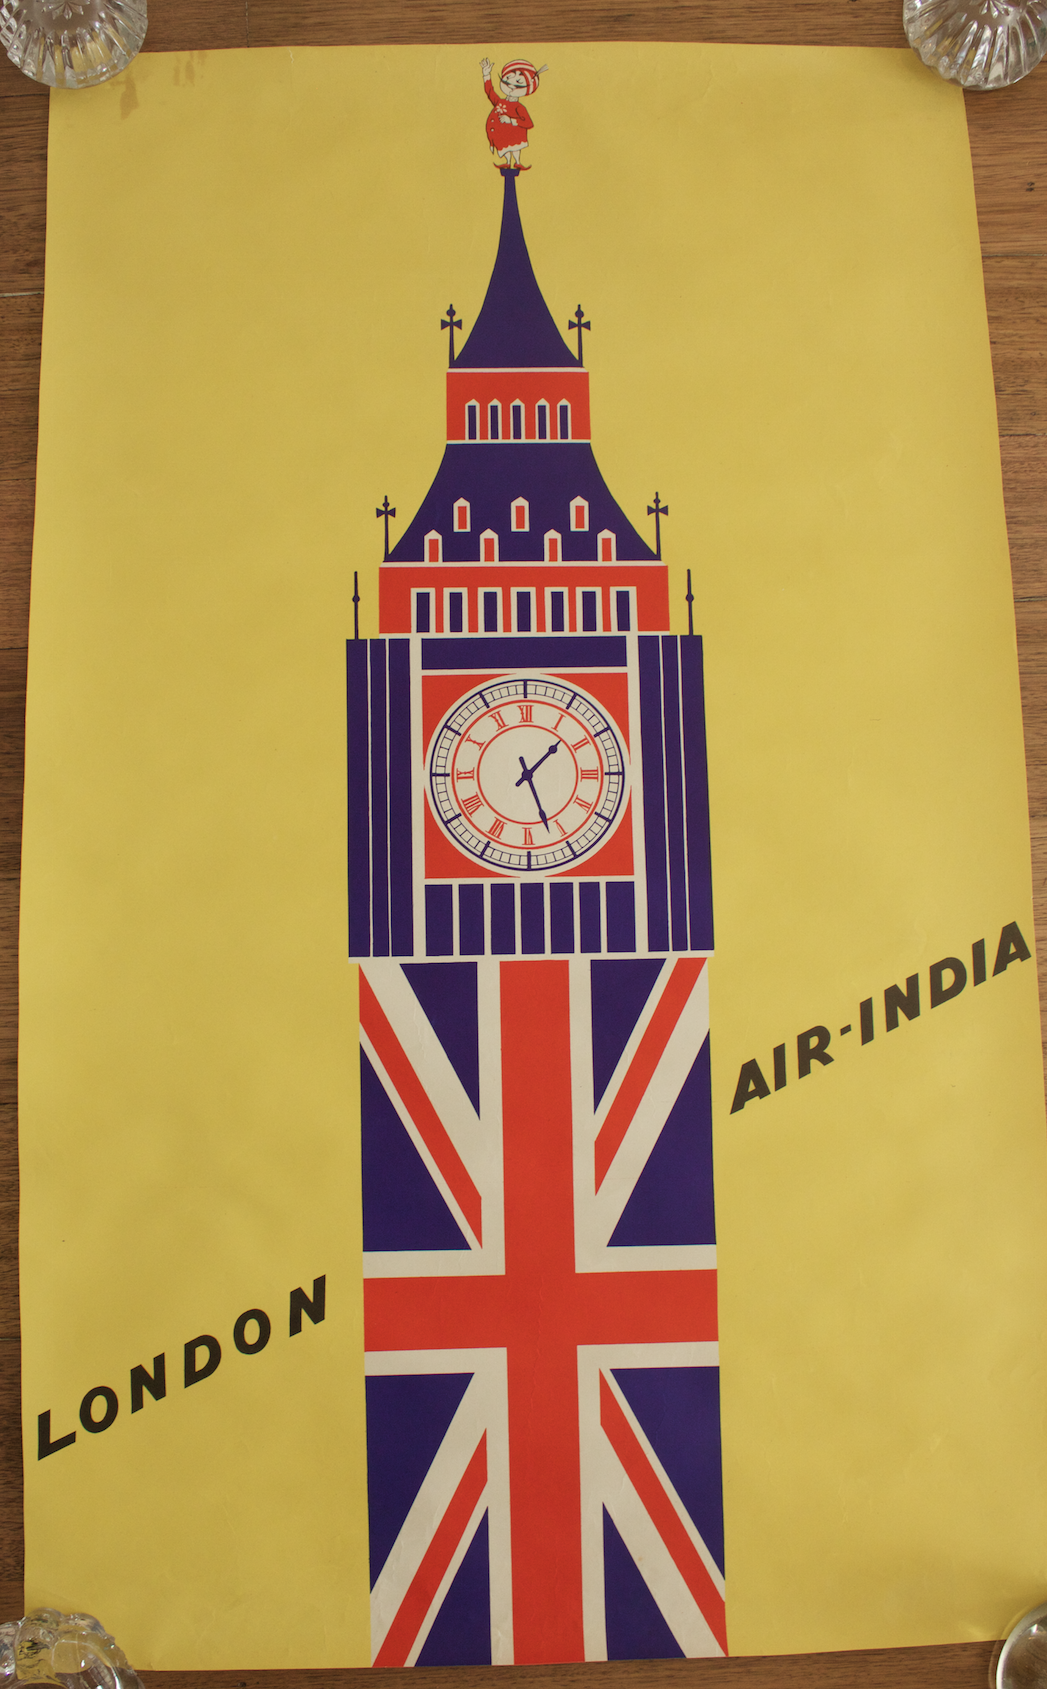 Original Vintage Poster Air India London